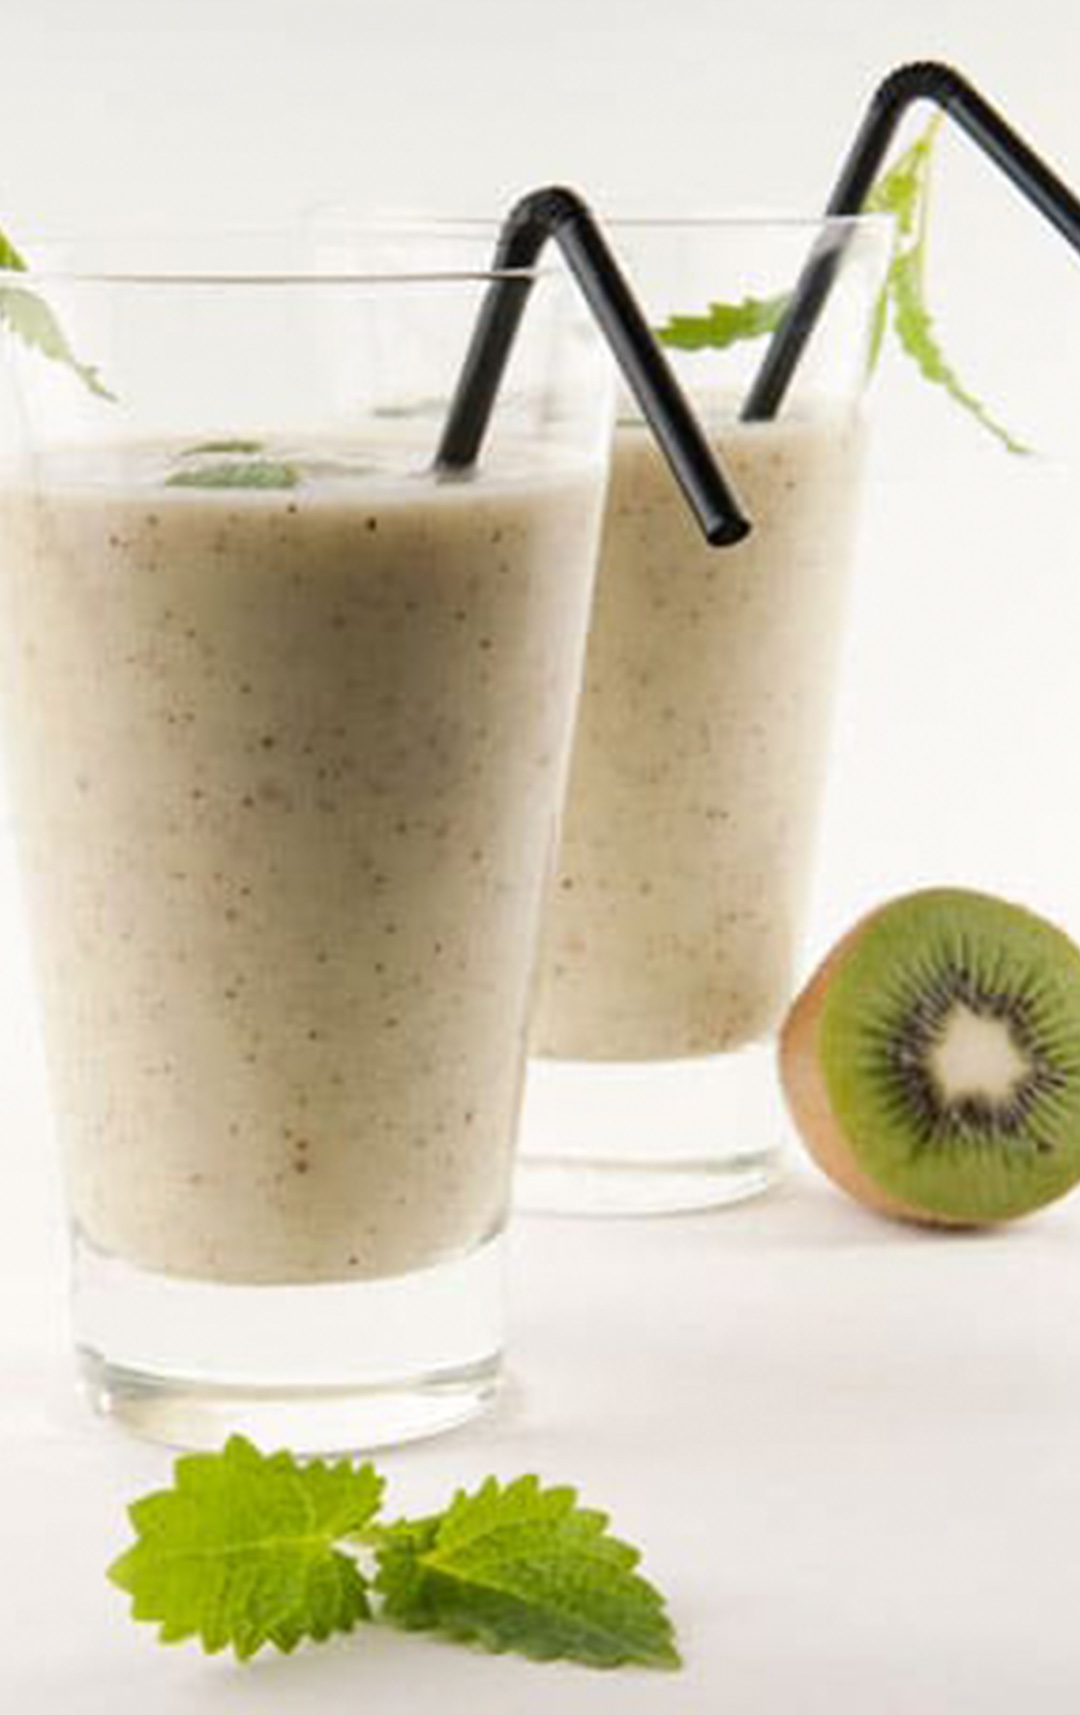 Recipe10_smoothie_fresco_kiwi_mela-thumbnail.jpg